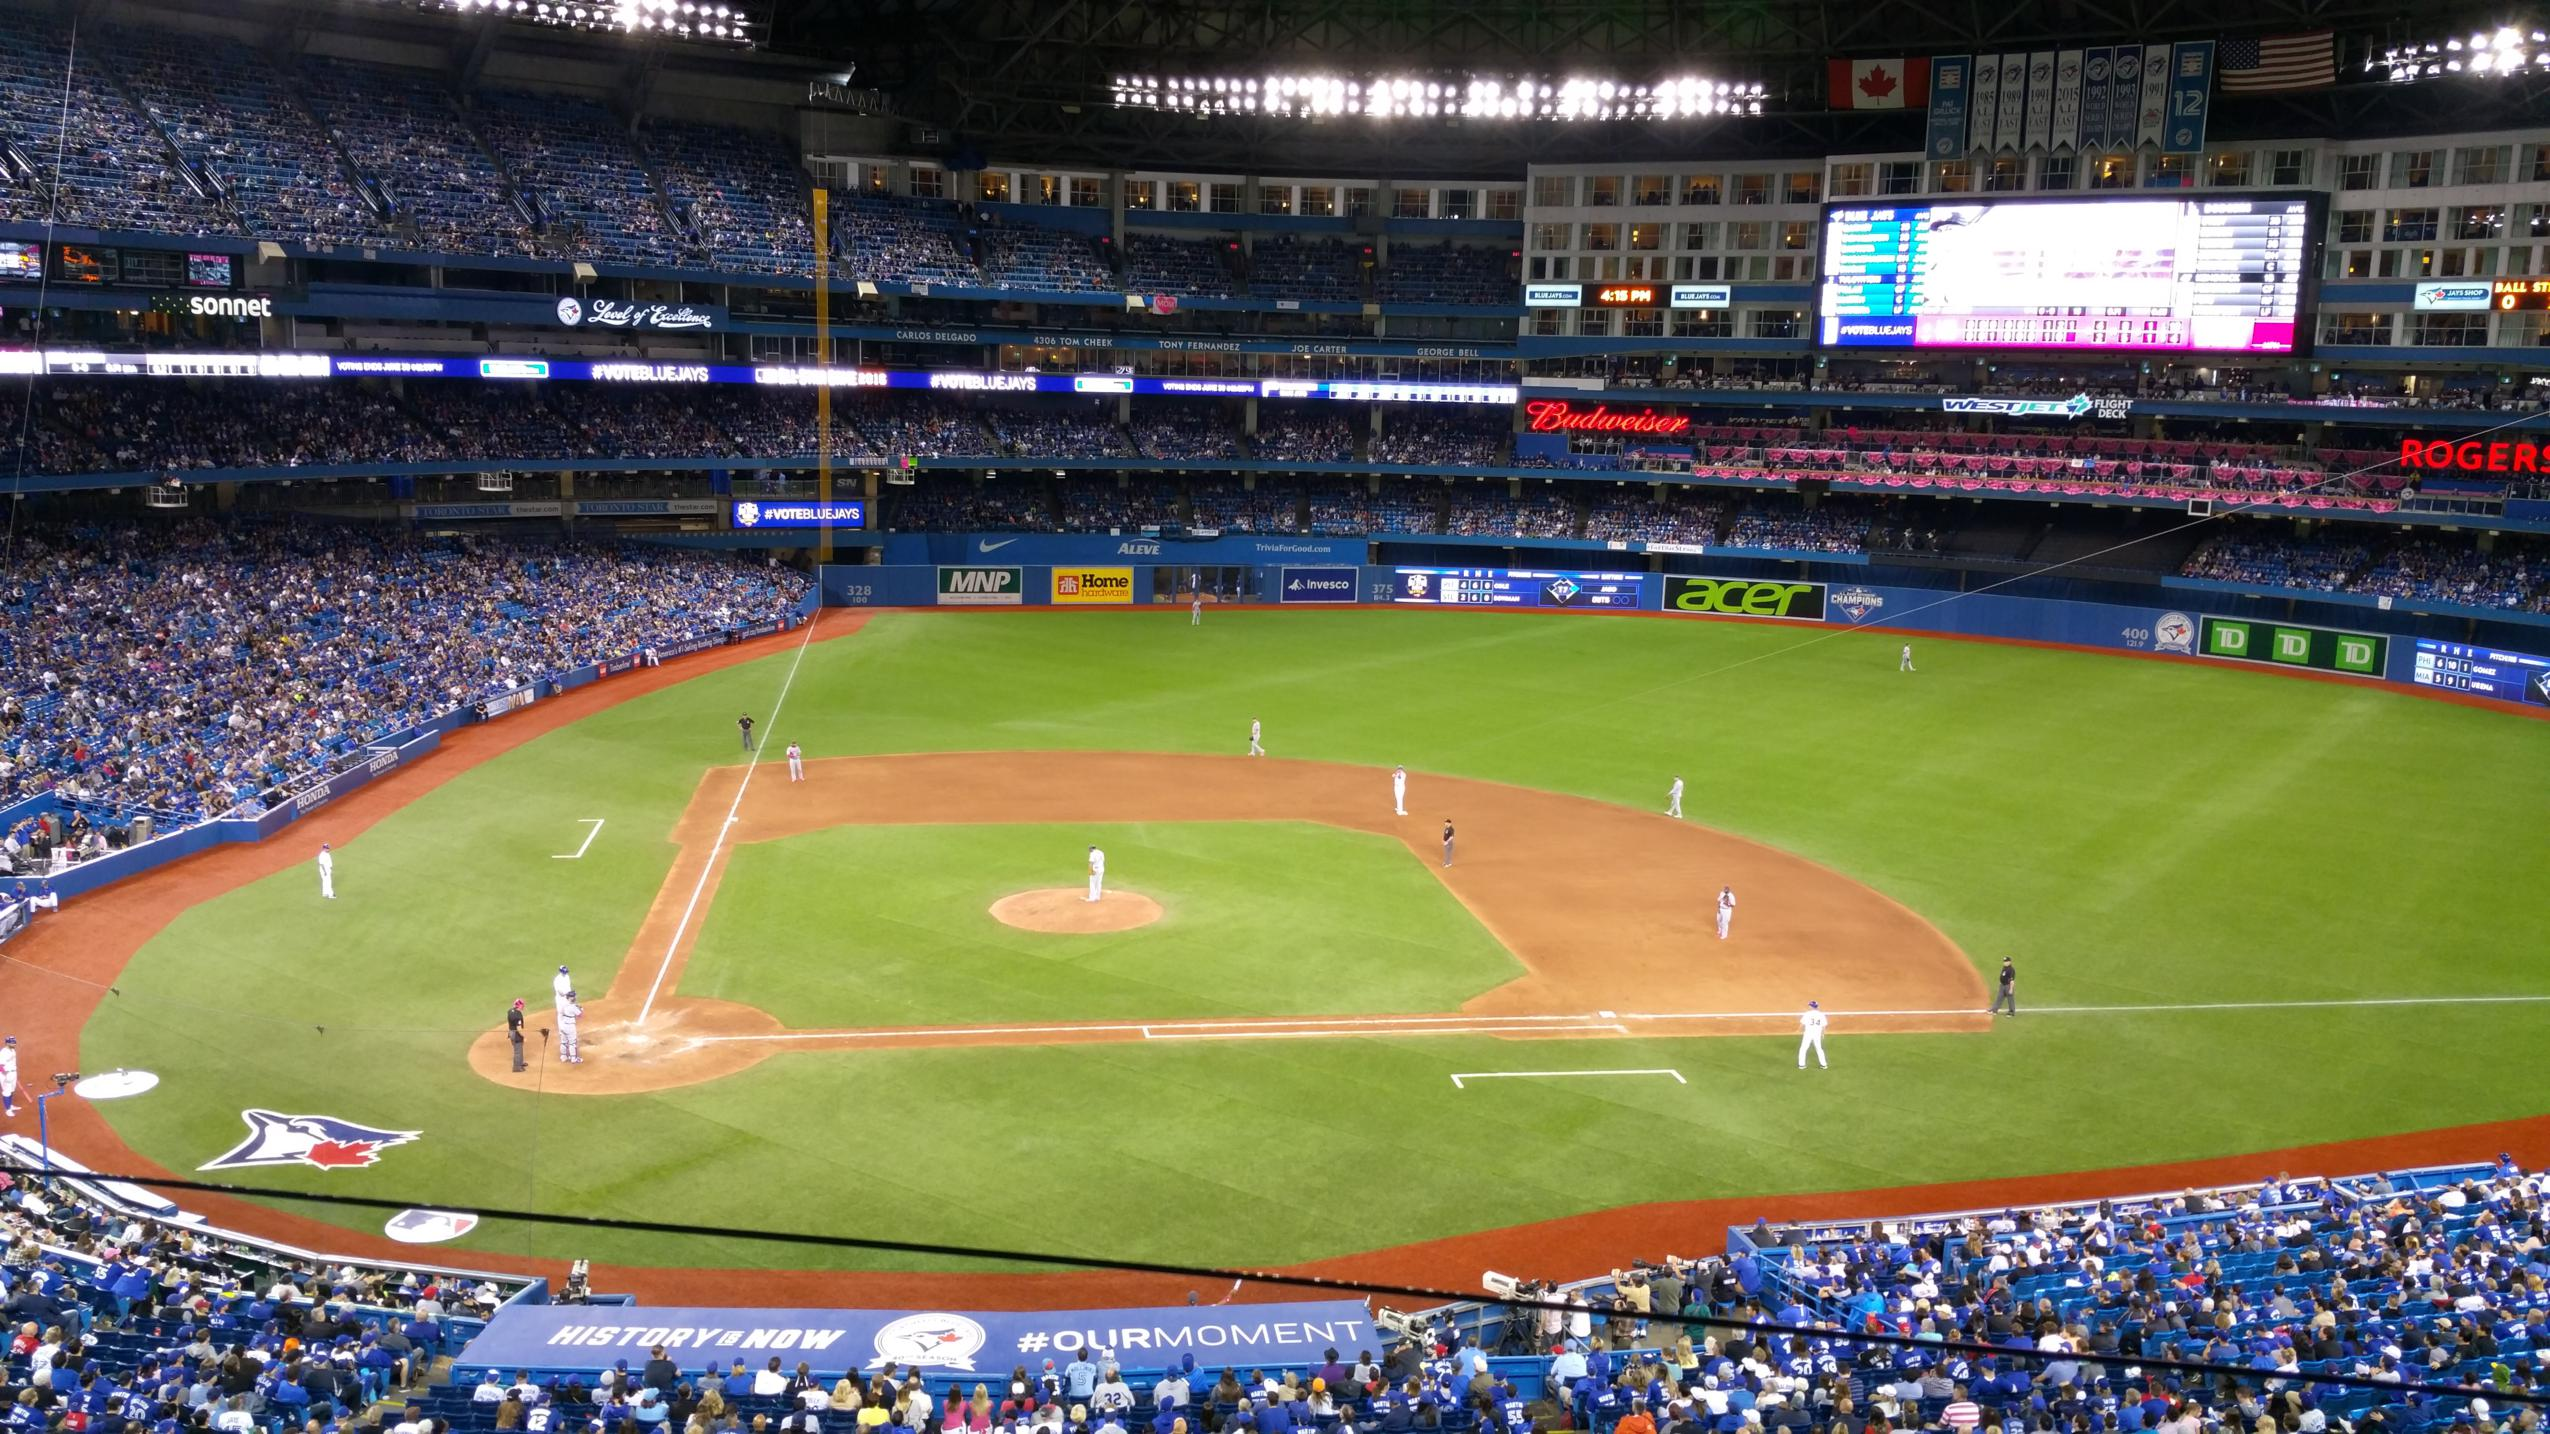 Mother's Day at the Toronto Blue Jays with Rogers the Field